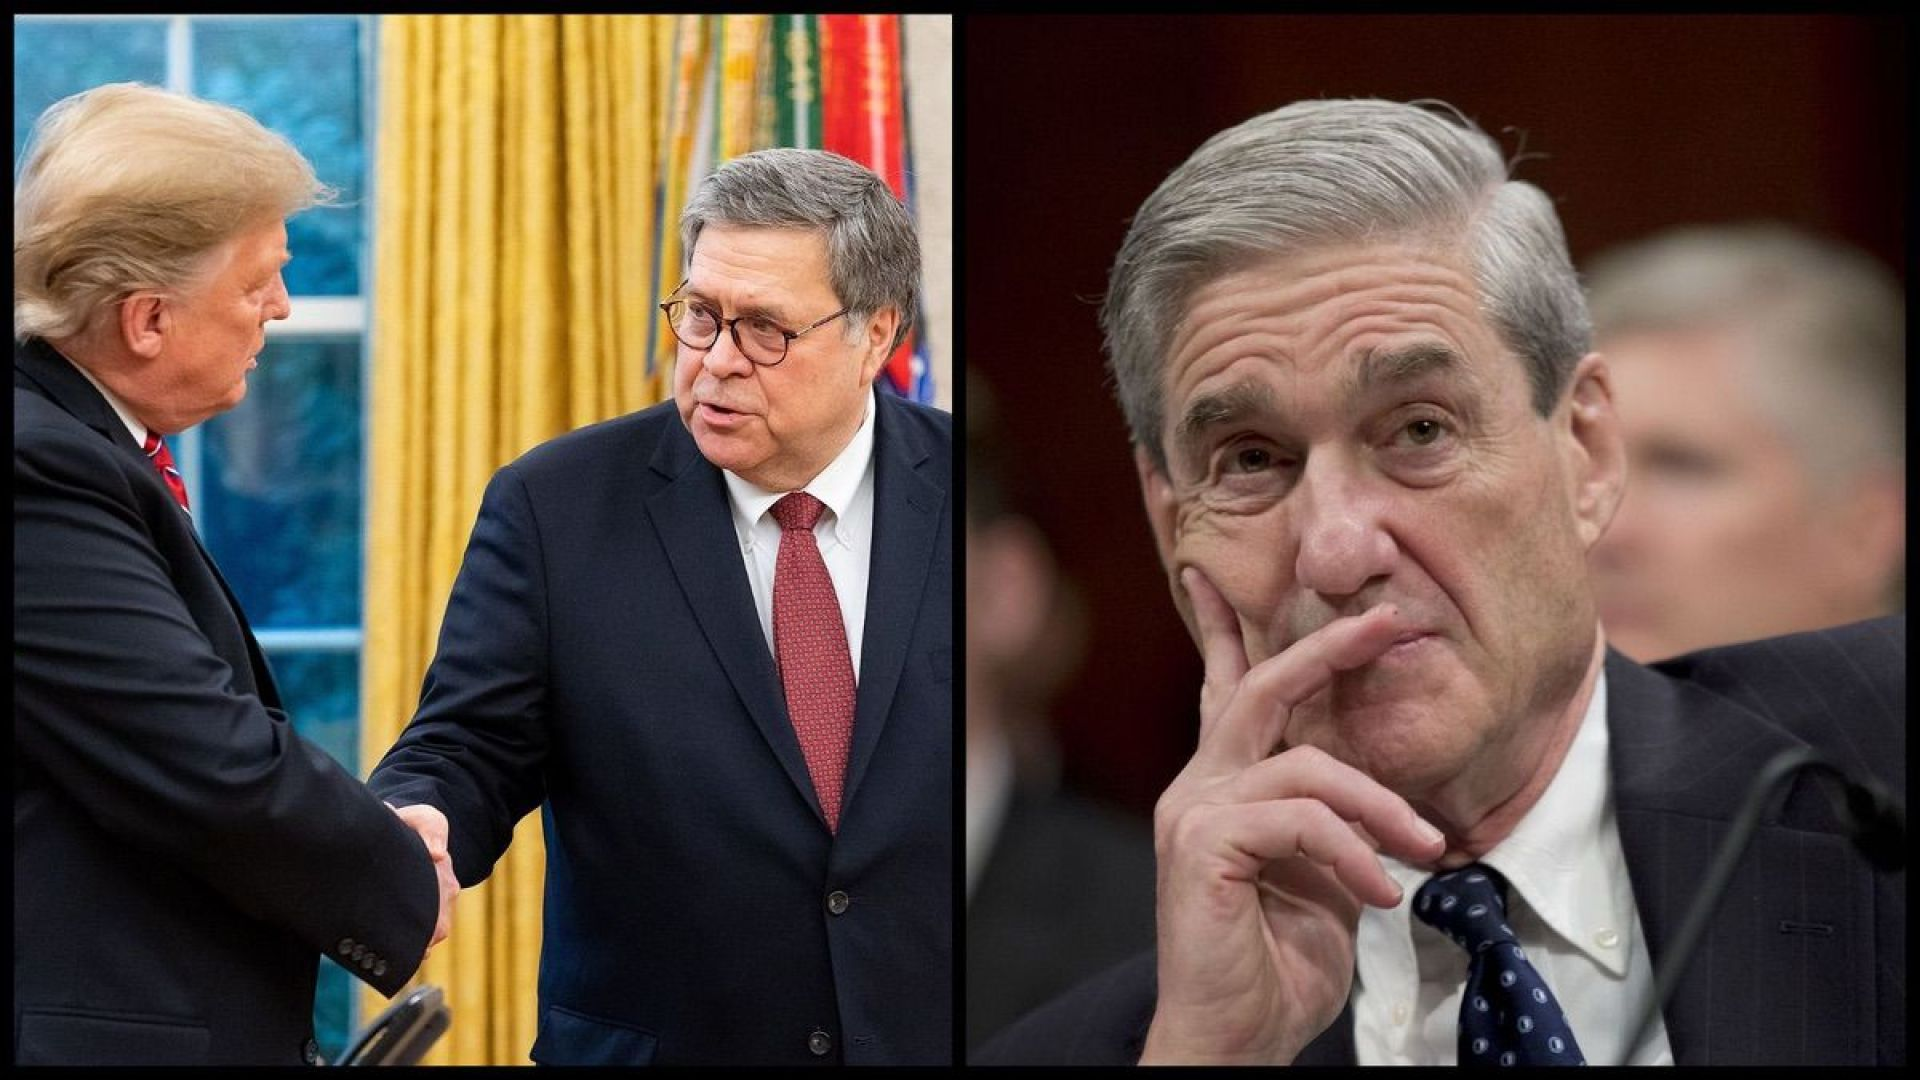 Left: President Donald Trump shaking Attorney General William Barr's hand. Right: Special Counsel Robert Mueller (DOJ/AP)